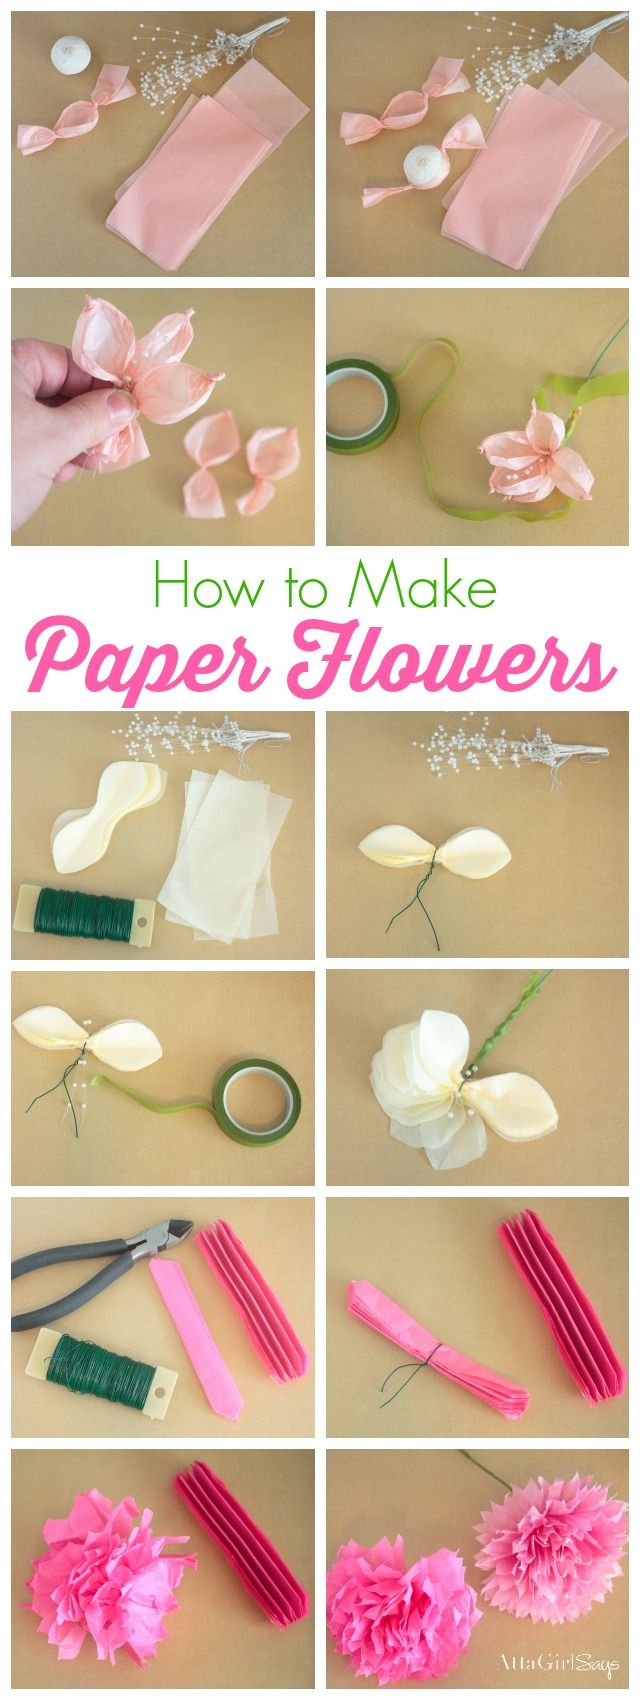 Uncategorized Craft Ideas Step By Step Instructions 569 best kids crafts images on pinterest diy christmas 2016 and how to make tissue paper flowers